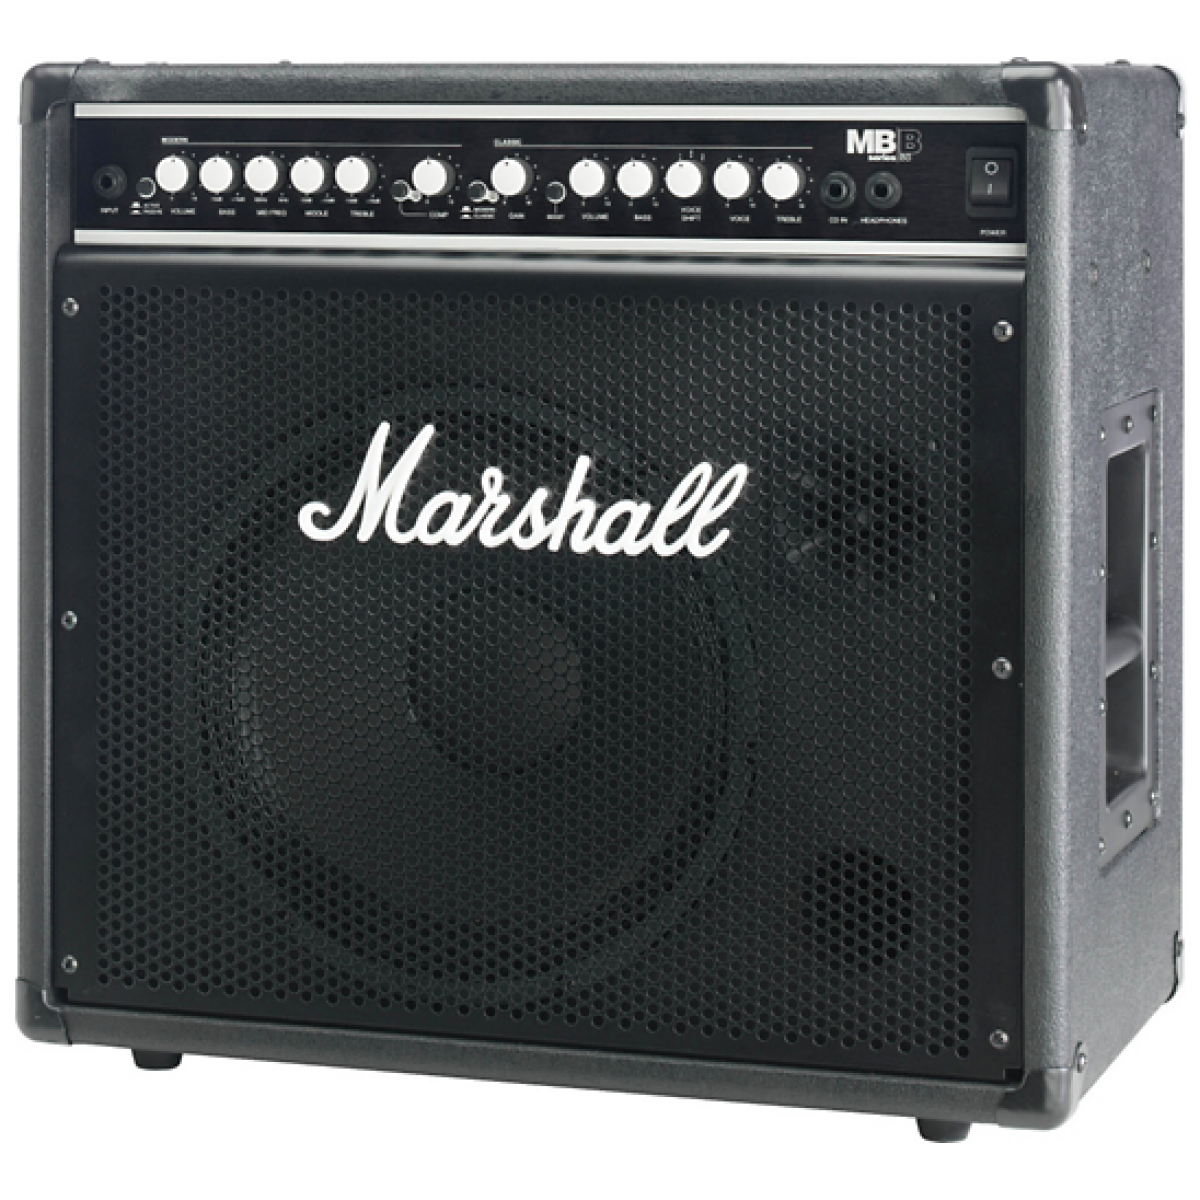 marshall b60 60w 1x12 hybrid bass combo amp buy bass guitar combo amps best price. Black Bedroom Furniture Sets. Home Design Ideas